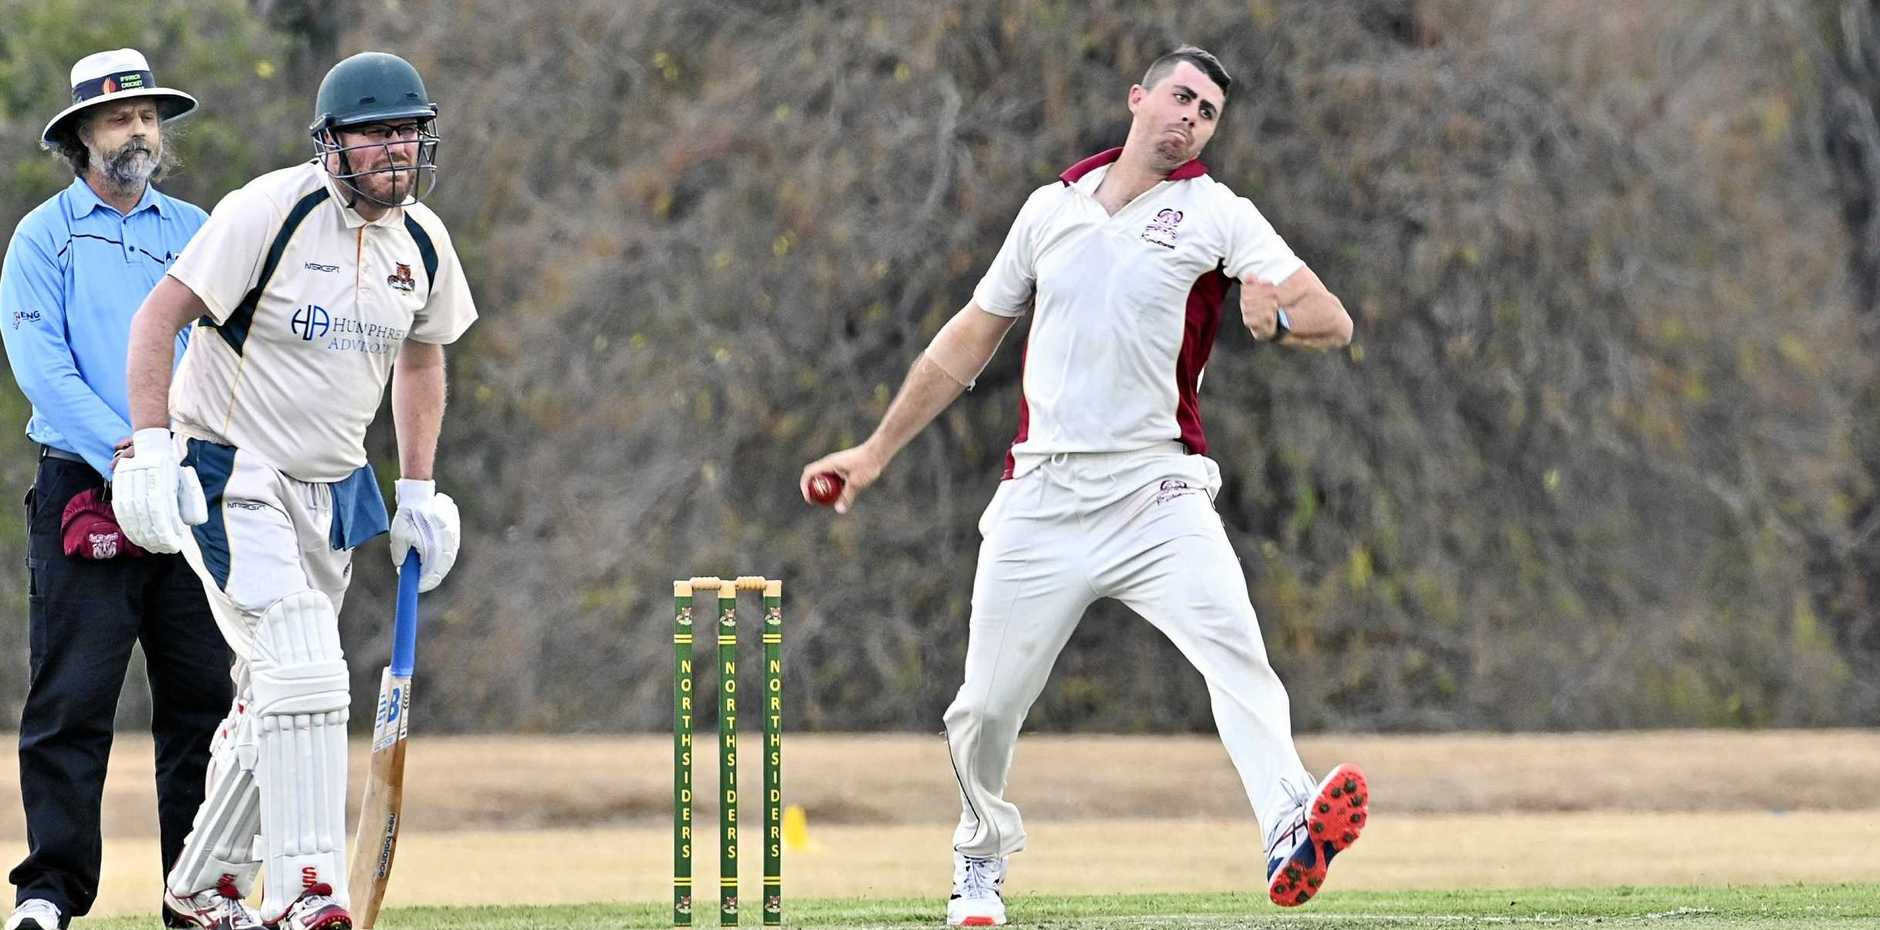 Centrals fast bowler Geoff Klease will play a vital role for SEQ in this weekend's Schaeffer Shield matches in Ipswich.